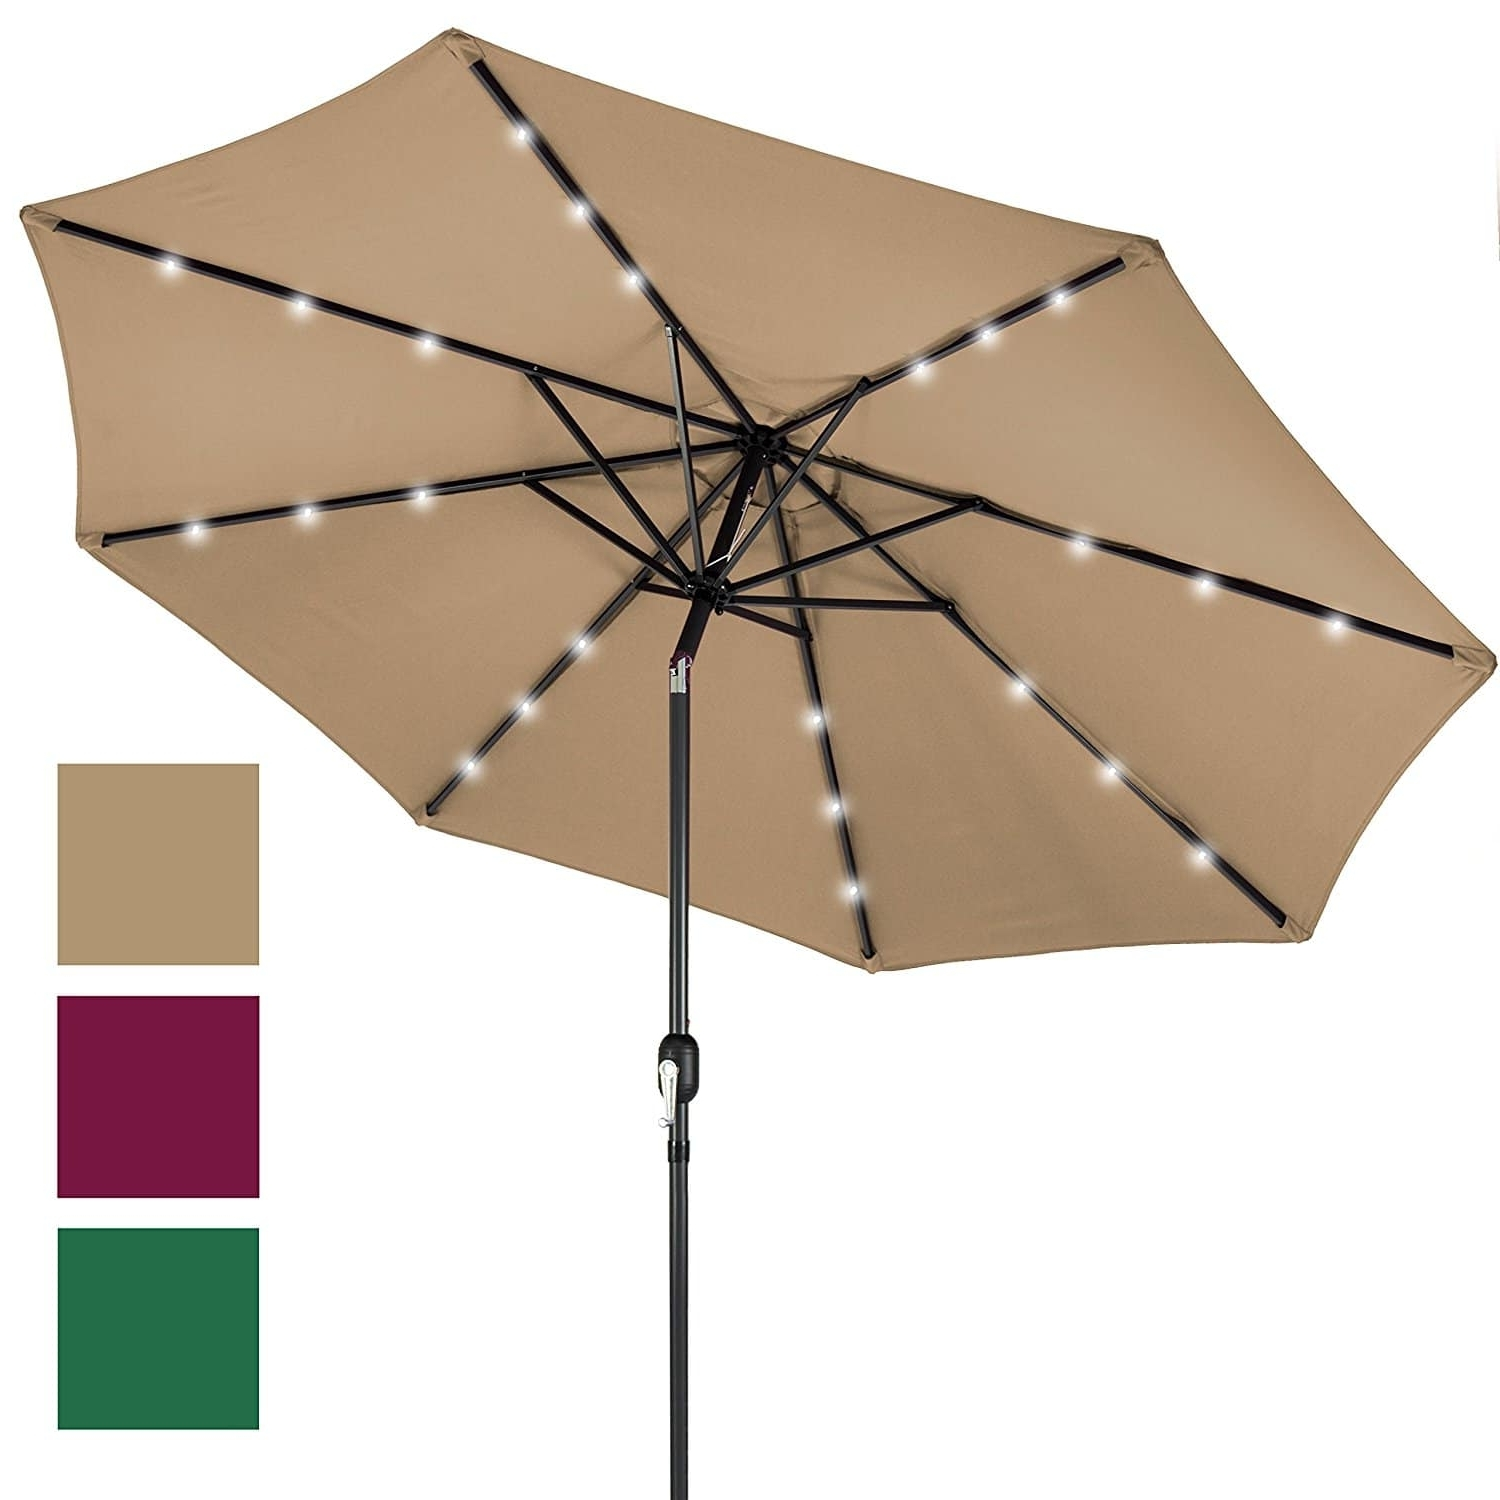 Trendy Lighted Patio Umbrellas Within Top 10 Best Patio Umbrellas In 2018 – Topreviewproducts (View 20 of 20)